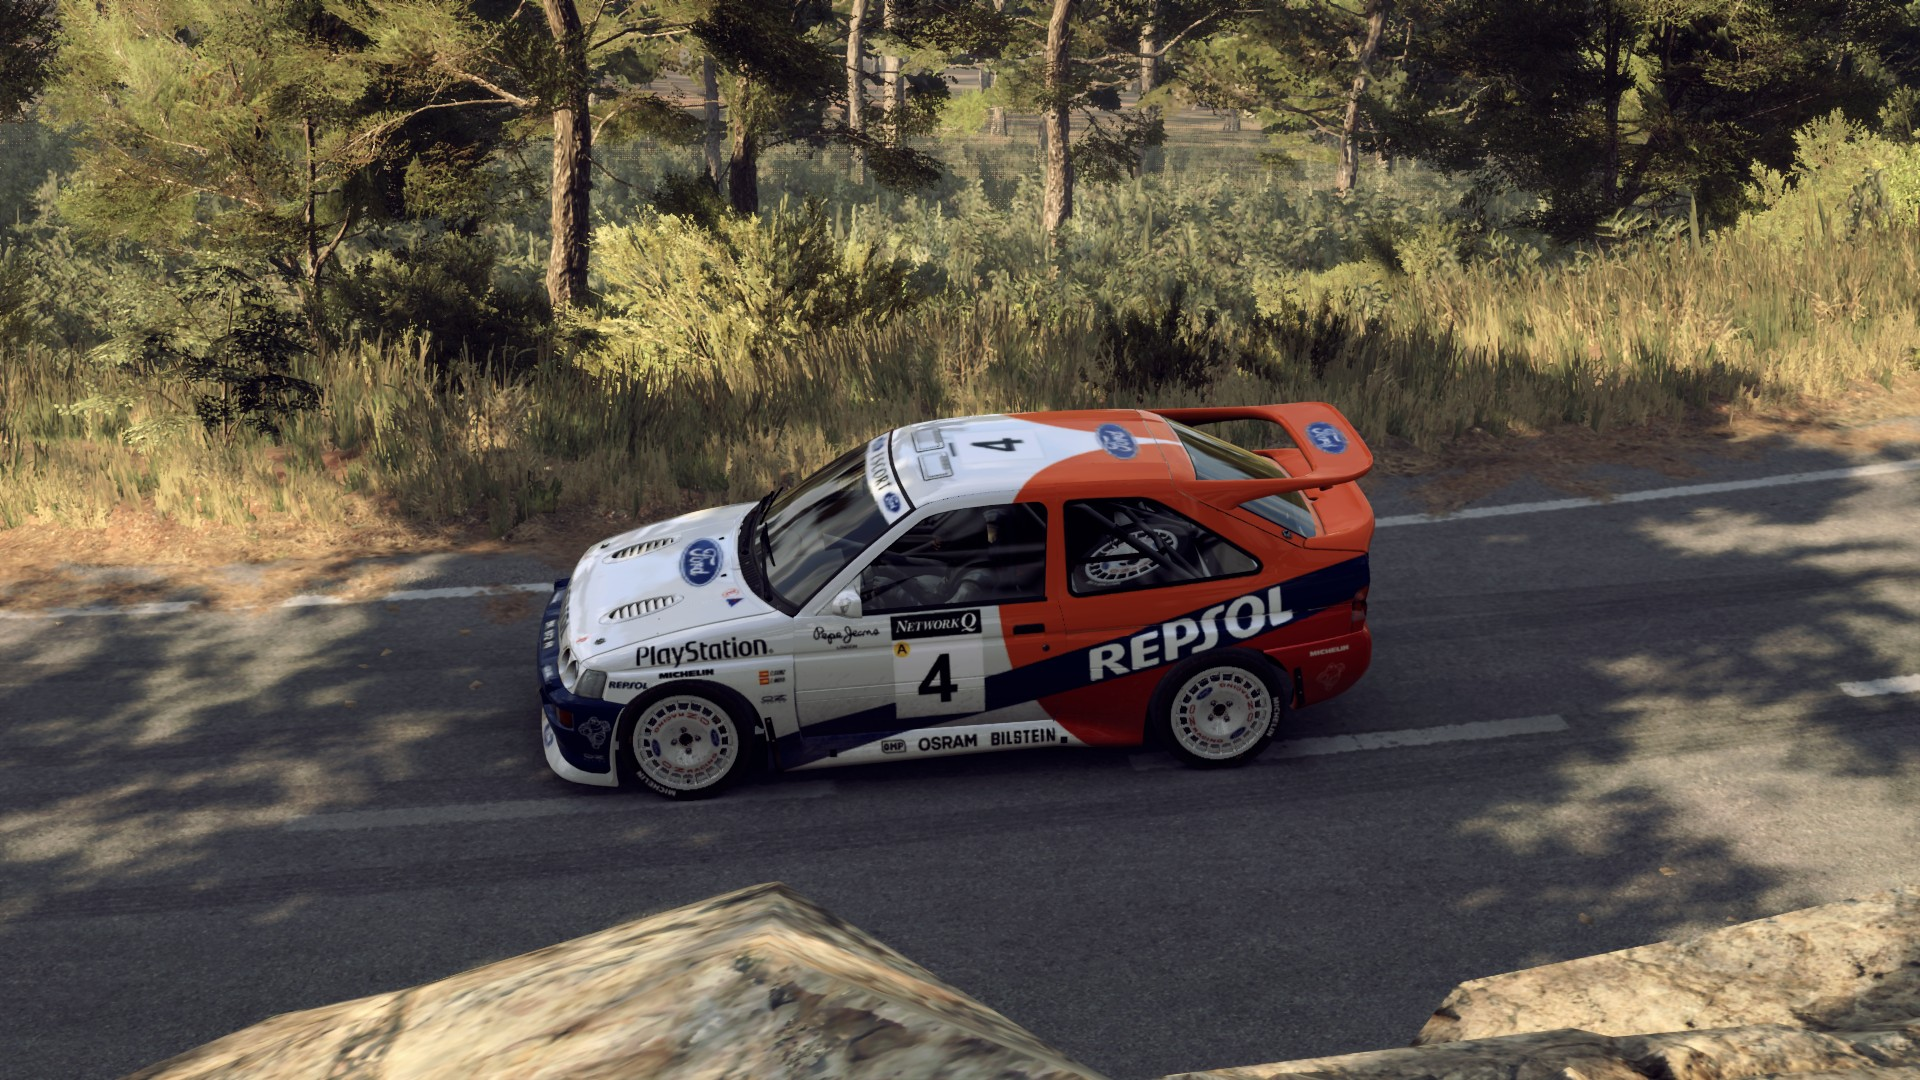 Sainz Repsol Escort Cosworth